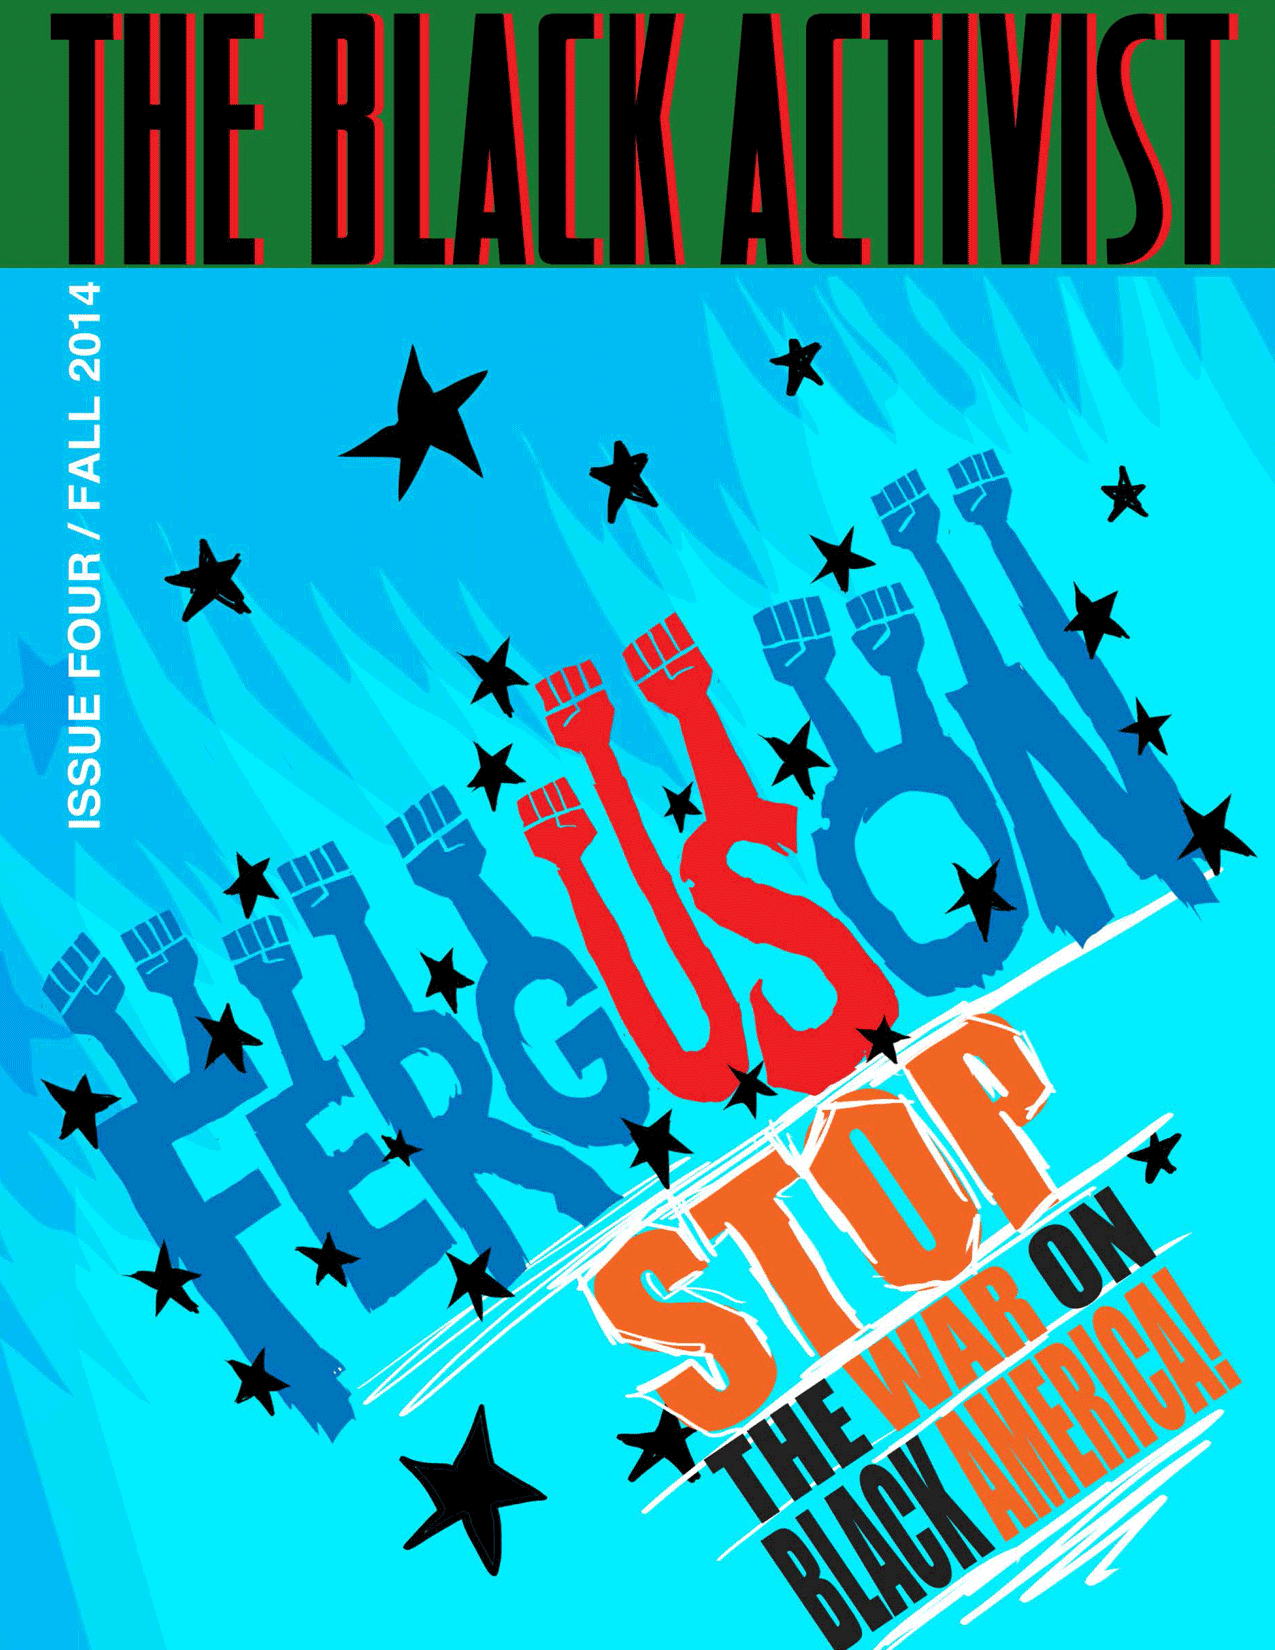 The Black Activist issue 4 front cover